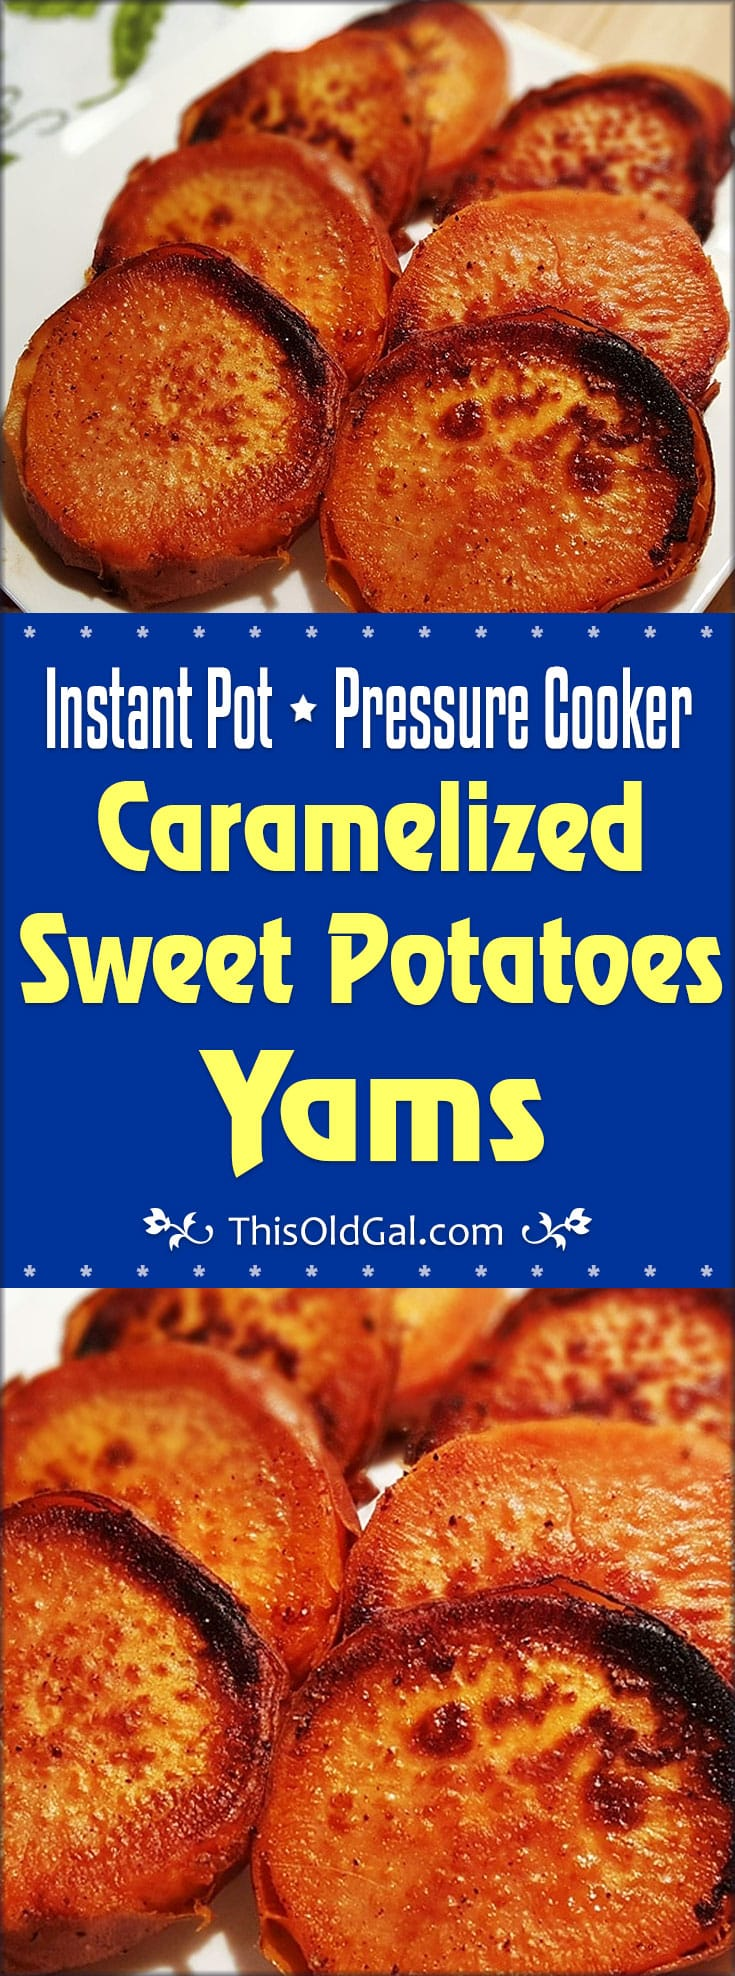 Instant Pot Pressure Cooker Caramelized Sweet Potatoes Yams